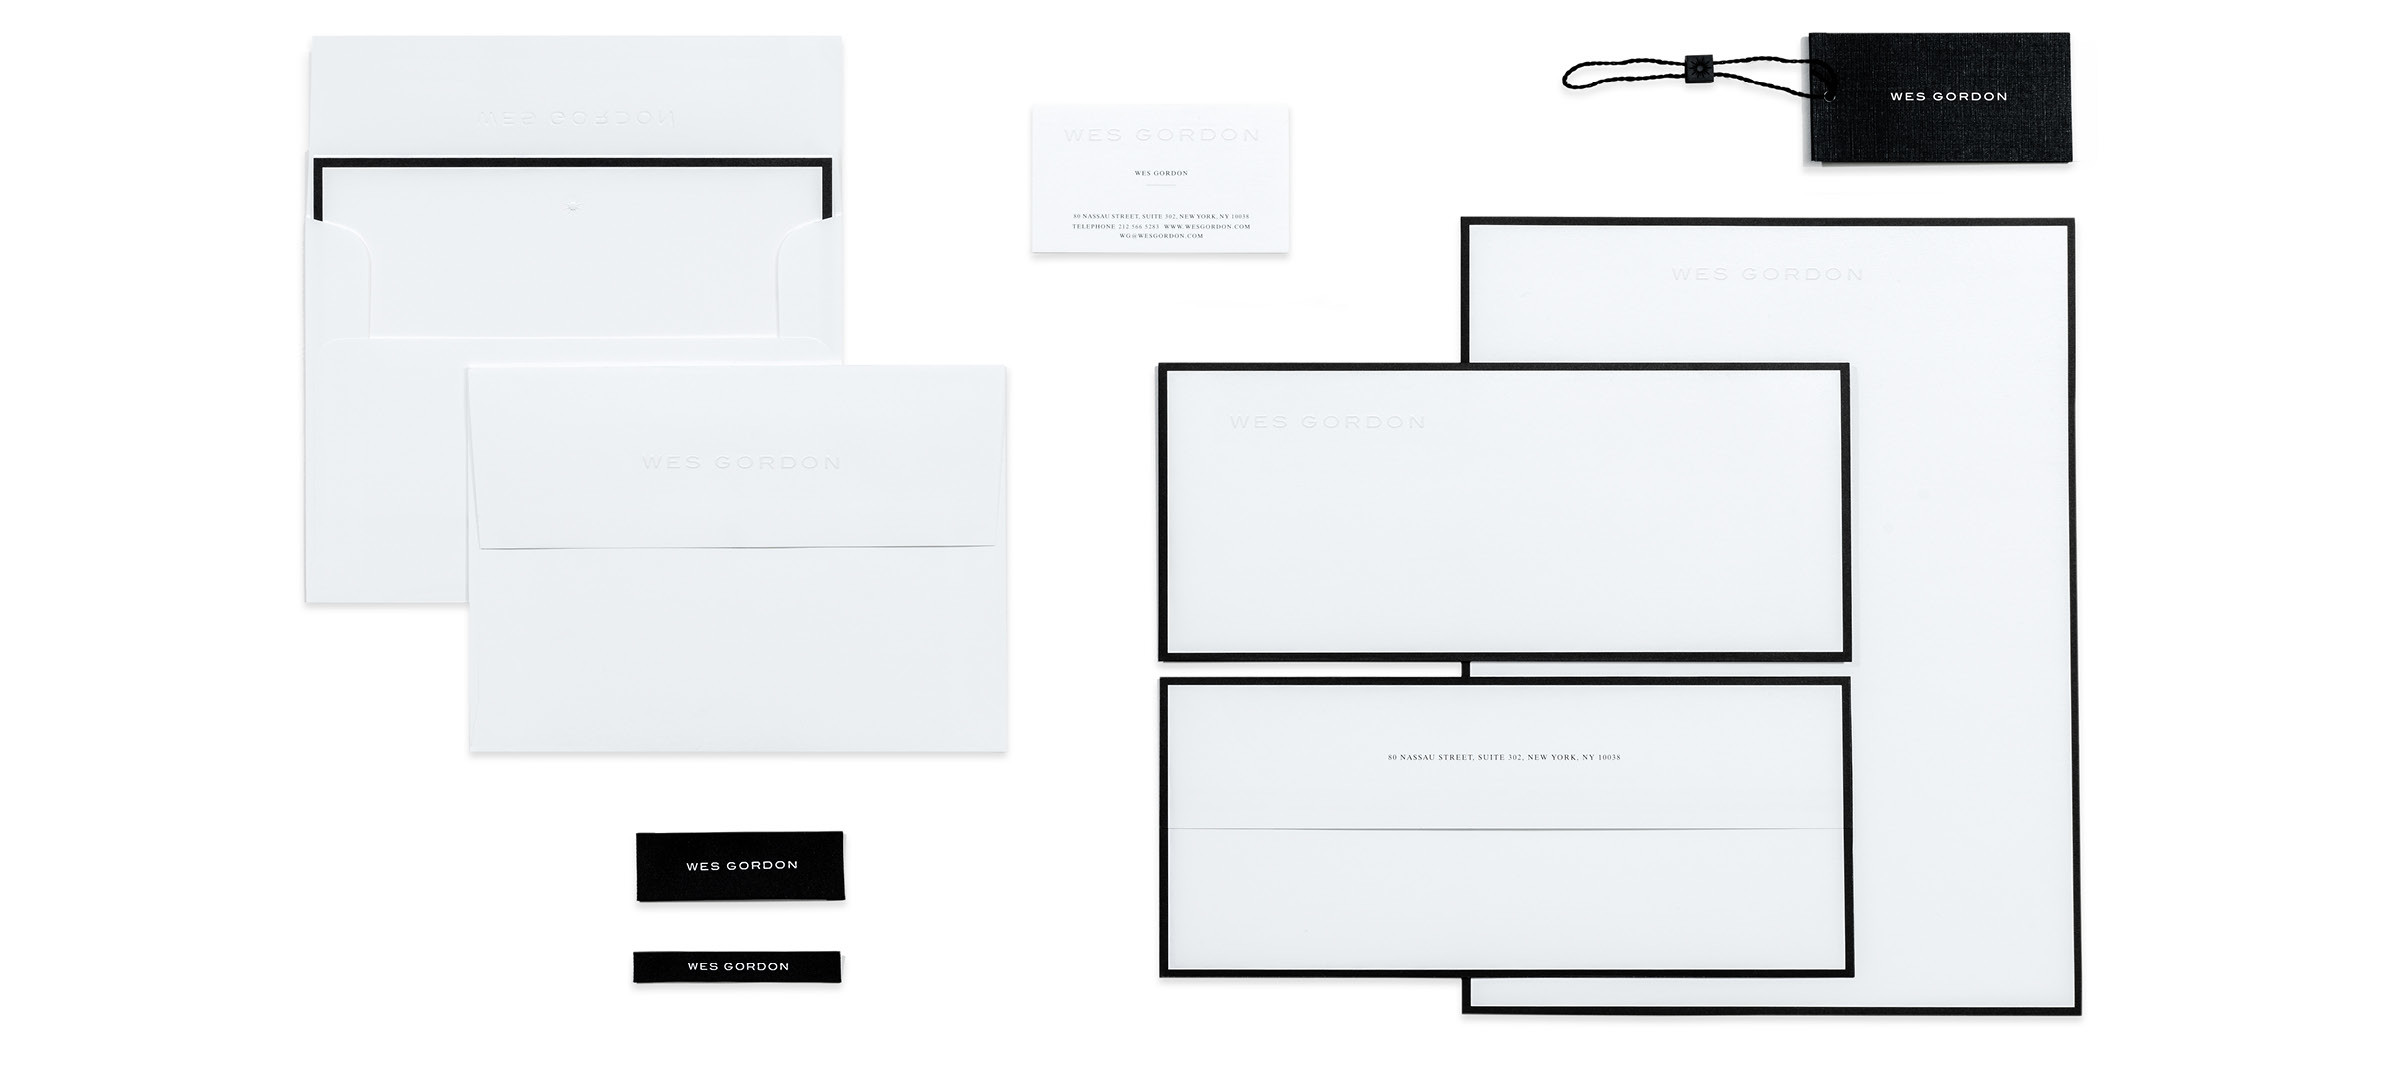 Wes Gordon stationary and letter heads designed by DTE Studio